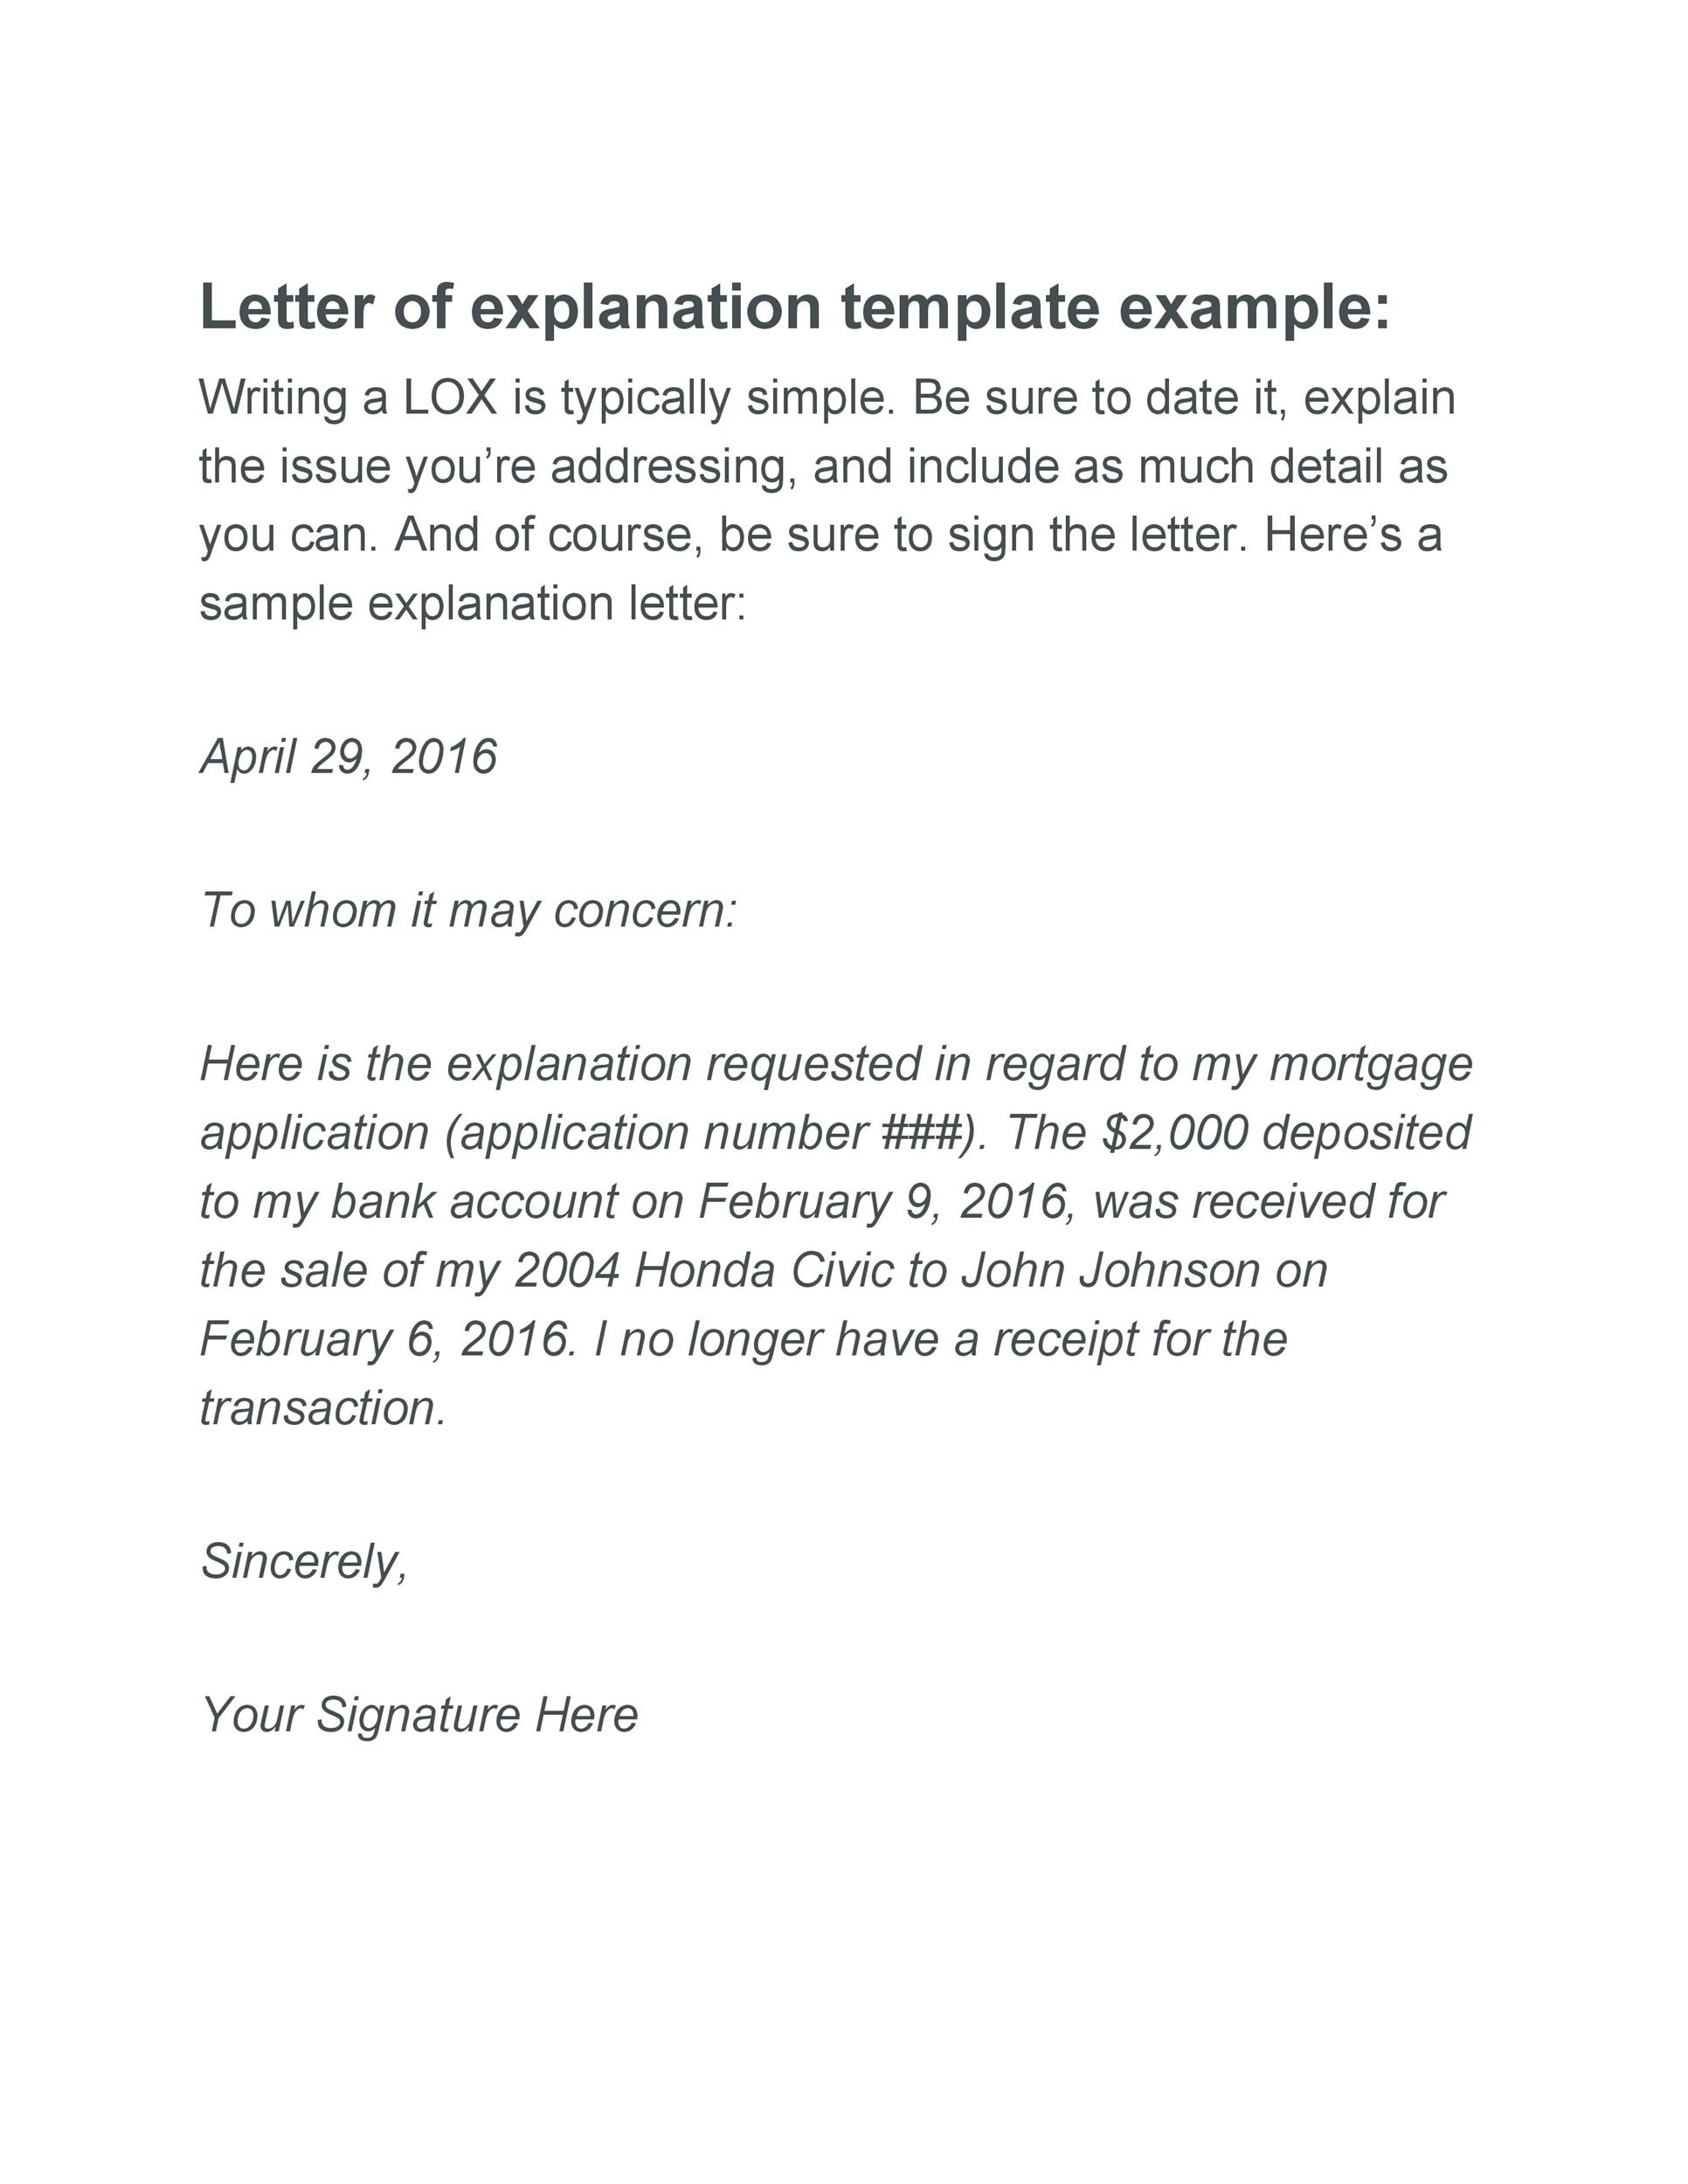 Letter Of Explanation Format Mortgage from templatelab.com